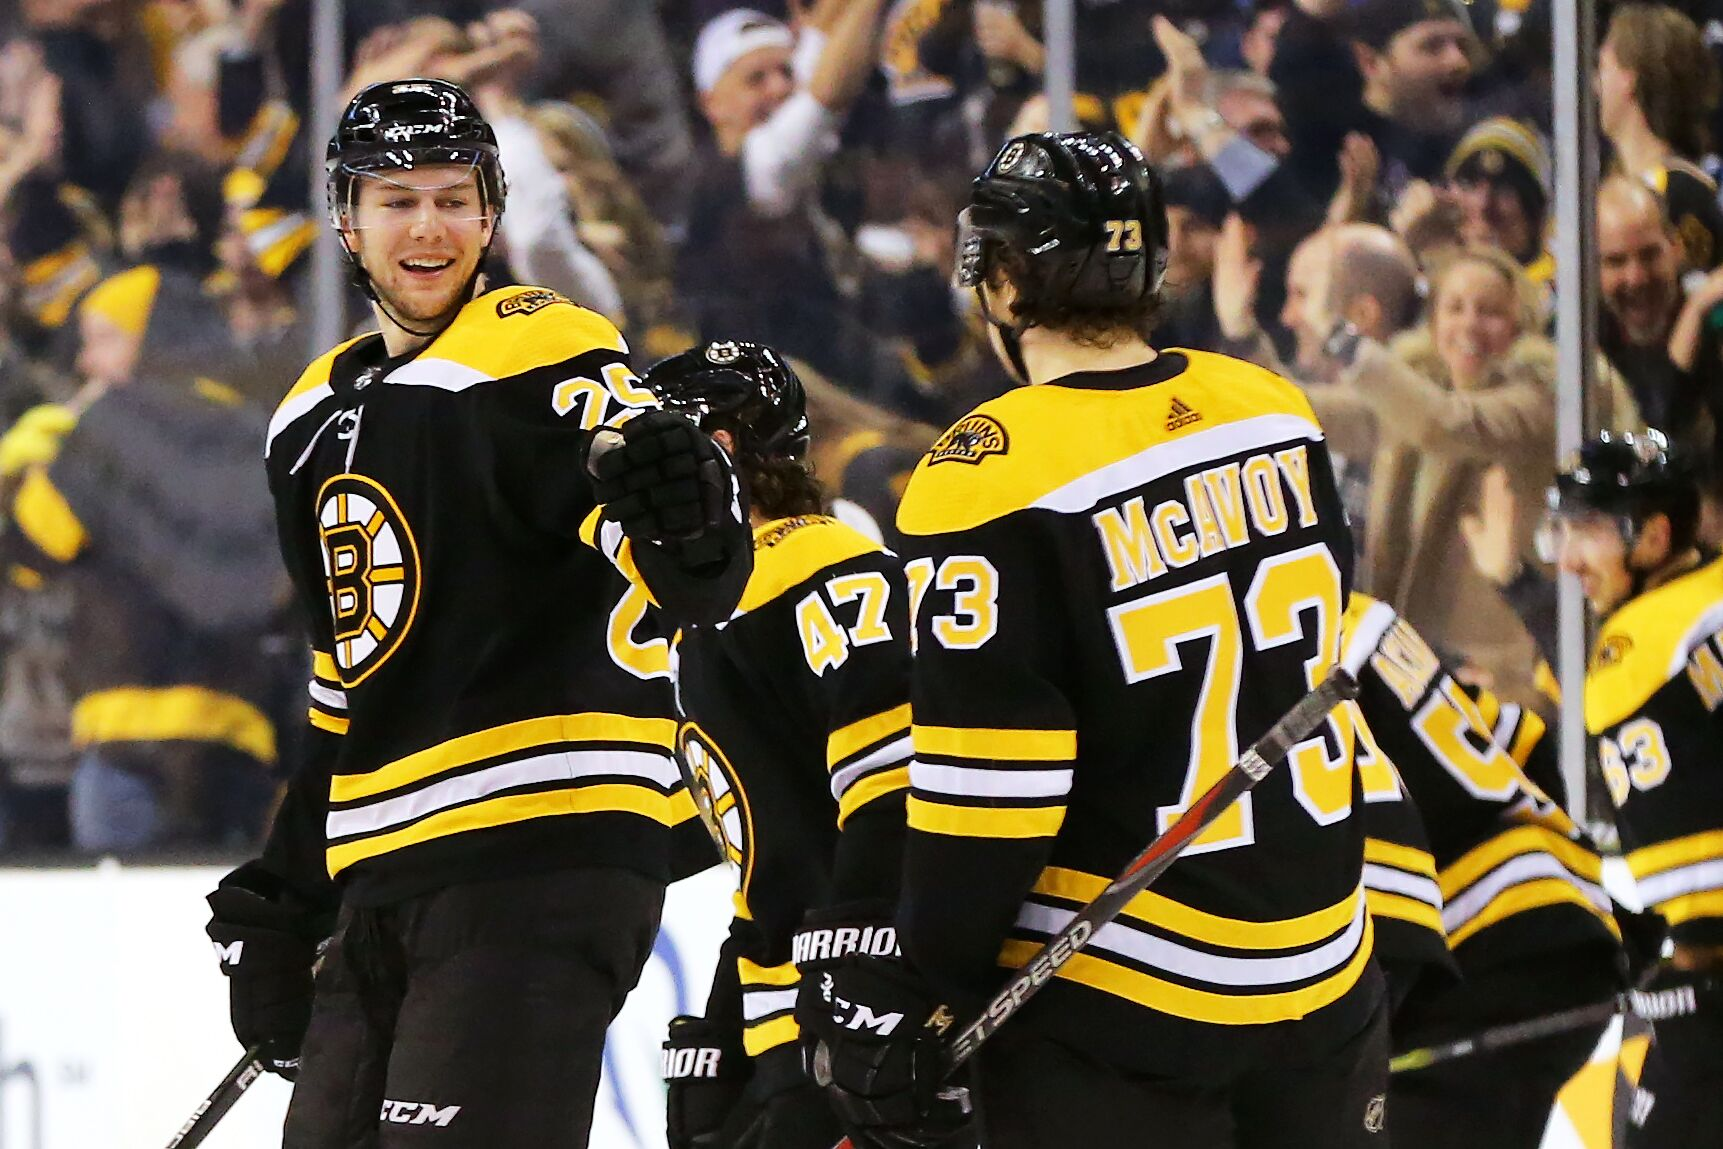 Boston Bruins: Why aren't Charlie McAvoy and Brandon Carlo signed yet?